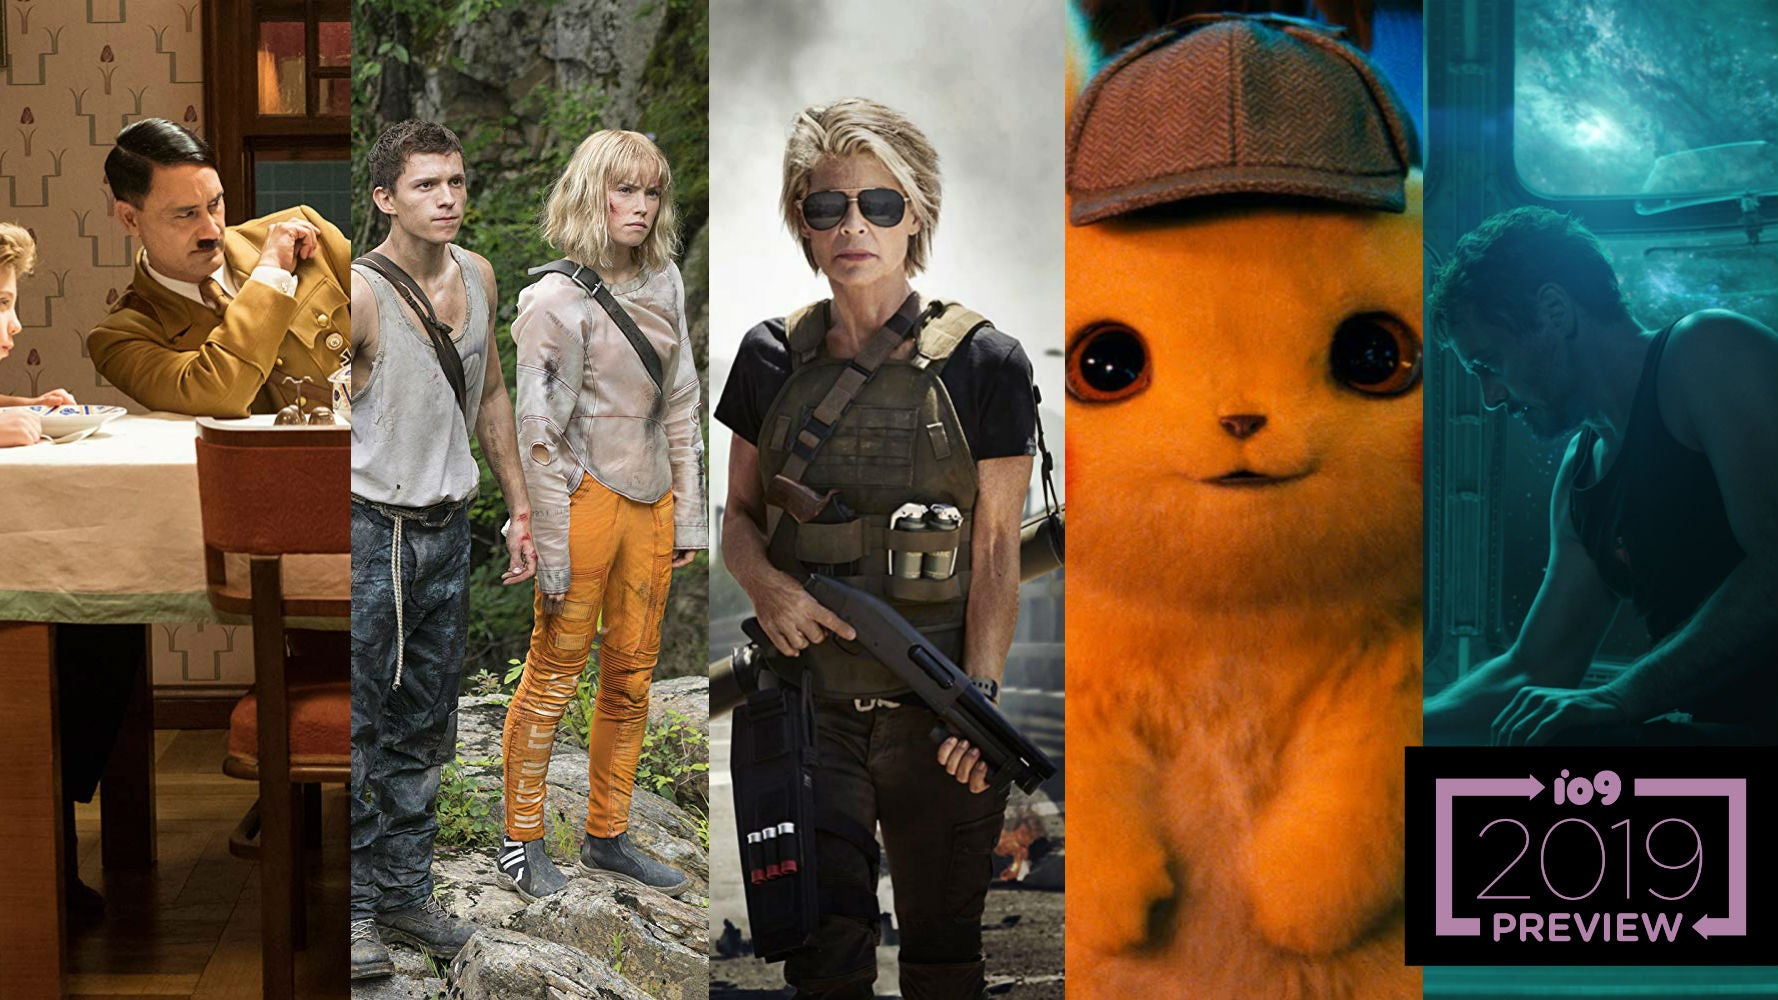 Gizmodo's Guide To All The Movies You Should Give A Damn About In 2019